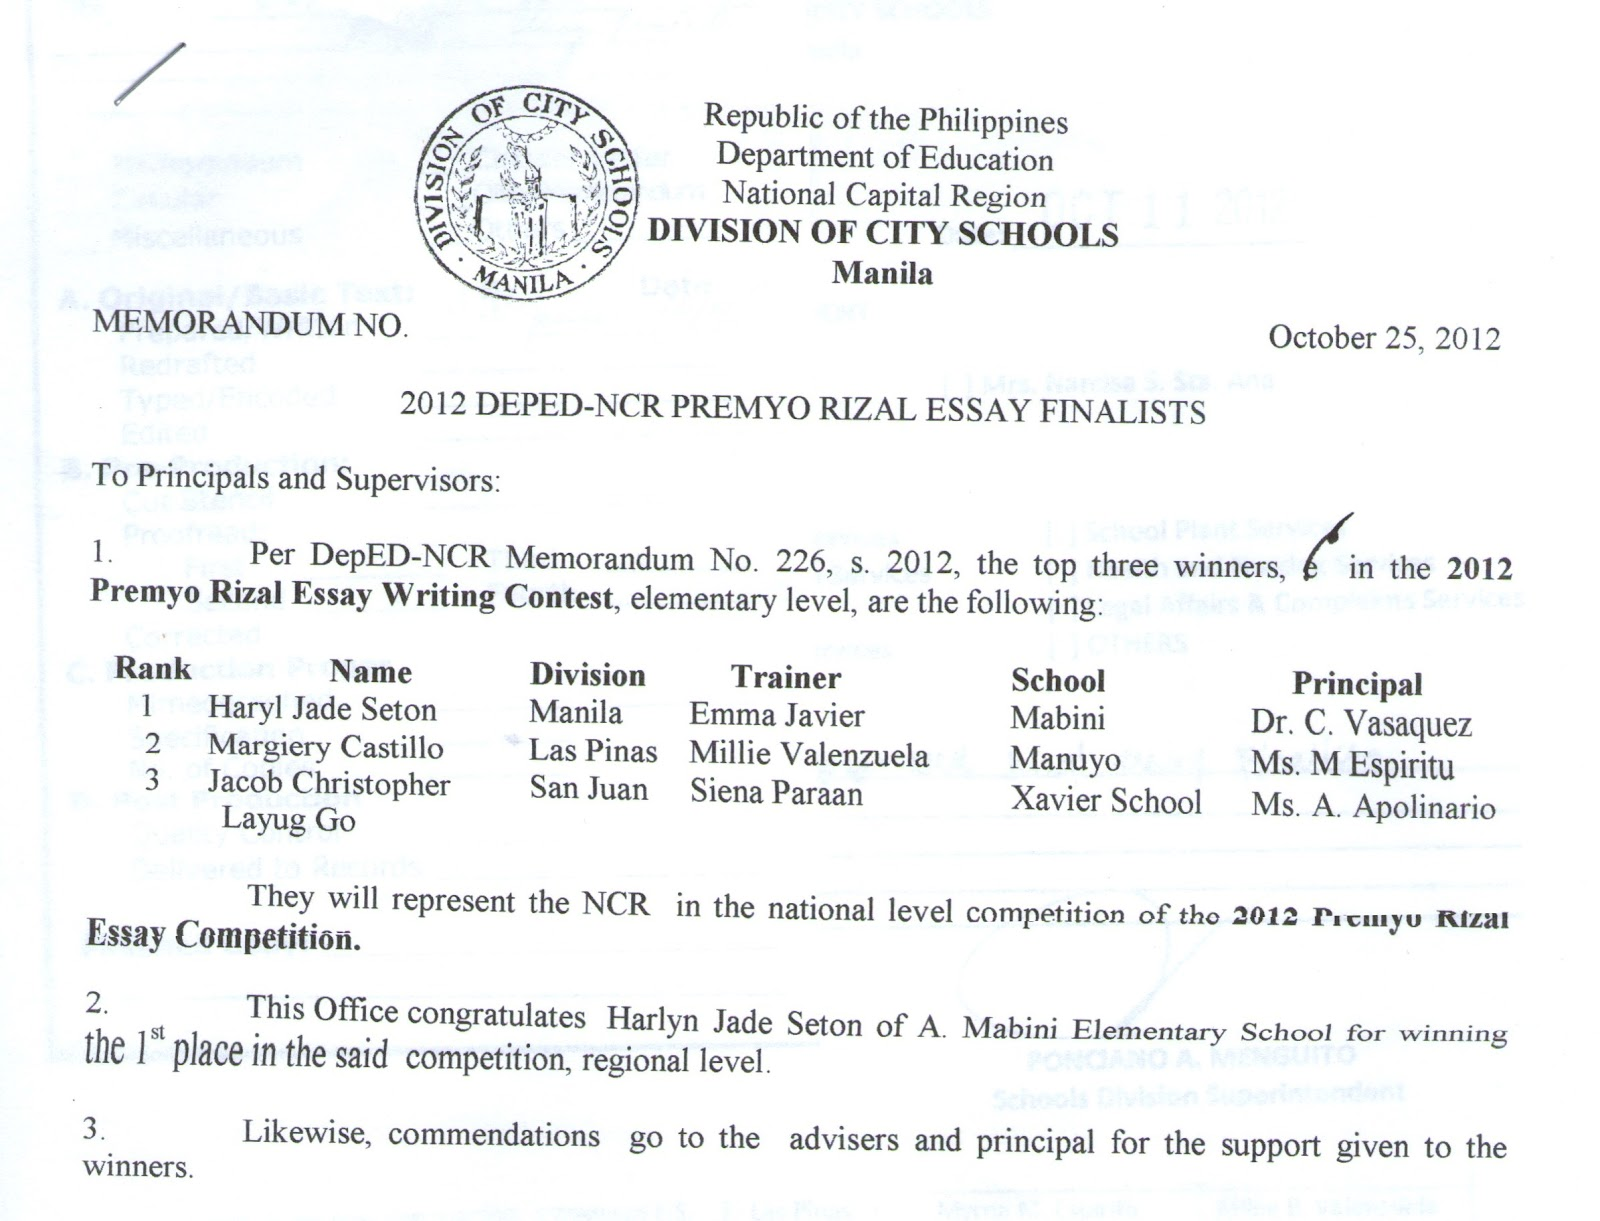 2012 premyo rizal essay writing contest winners